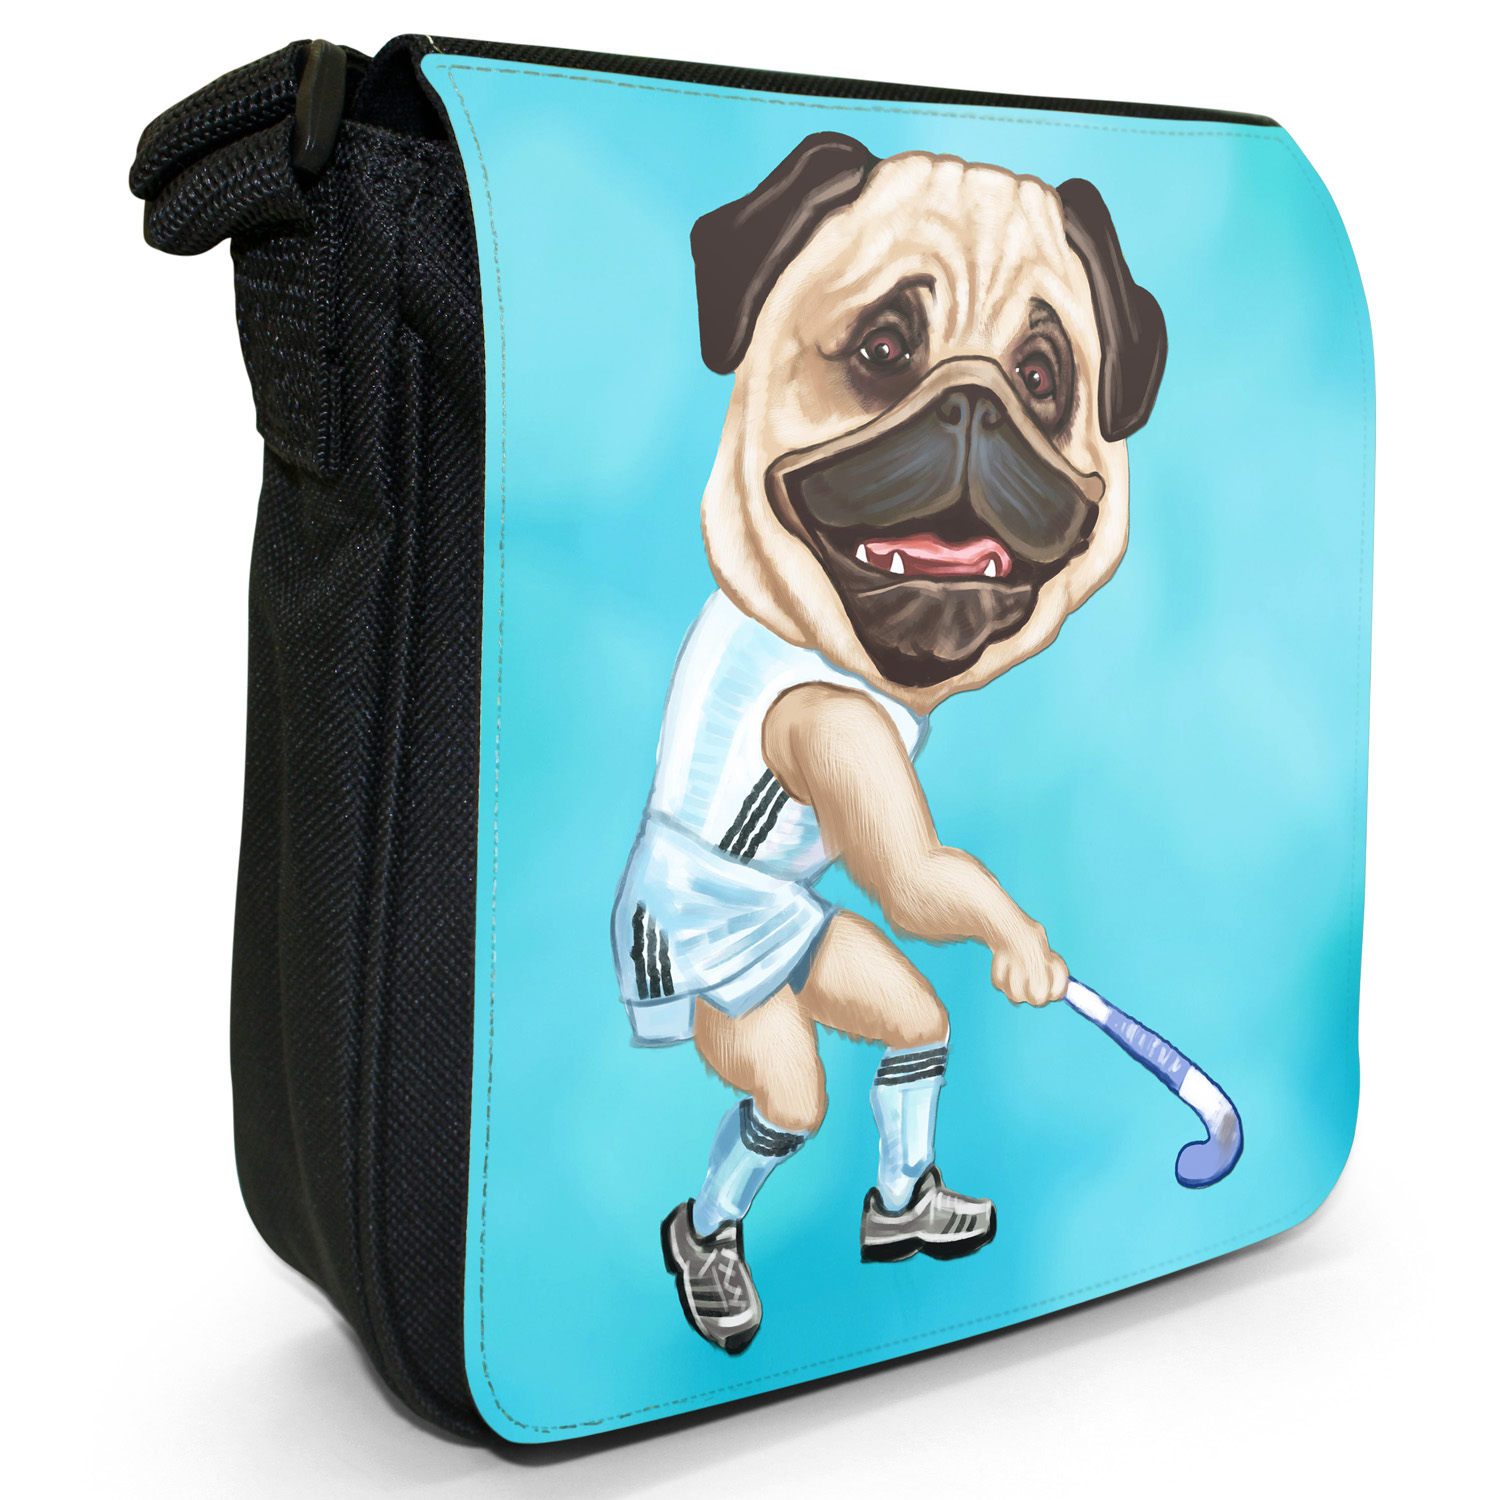 Pug-Sport-Athlete-Rugby-Football-Tennis-Small-Black-Canvas-Shoulder-Bag